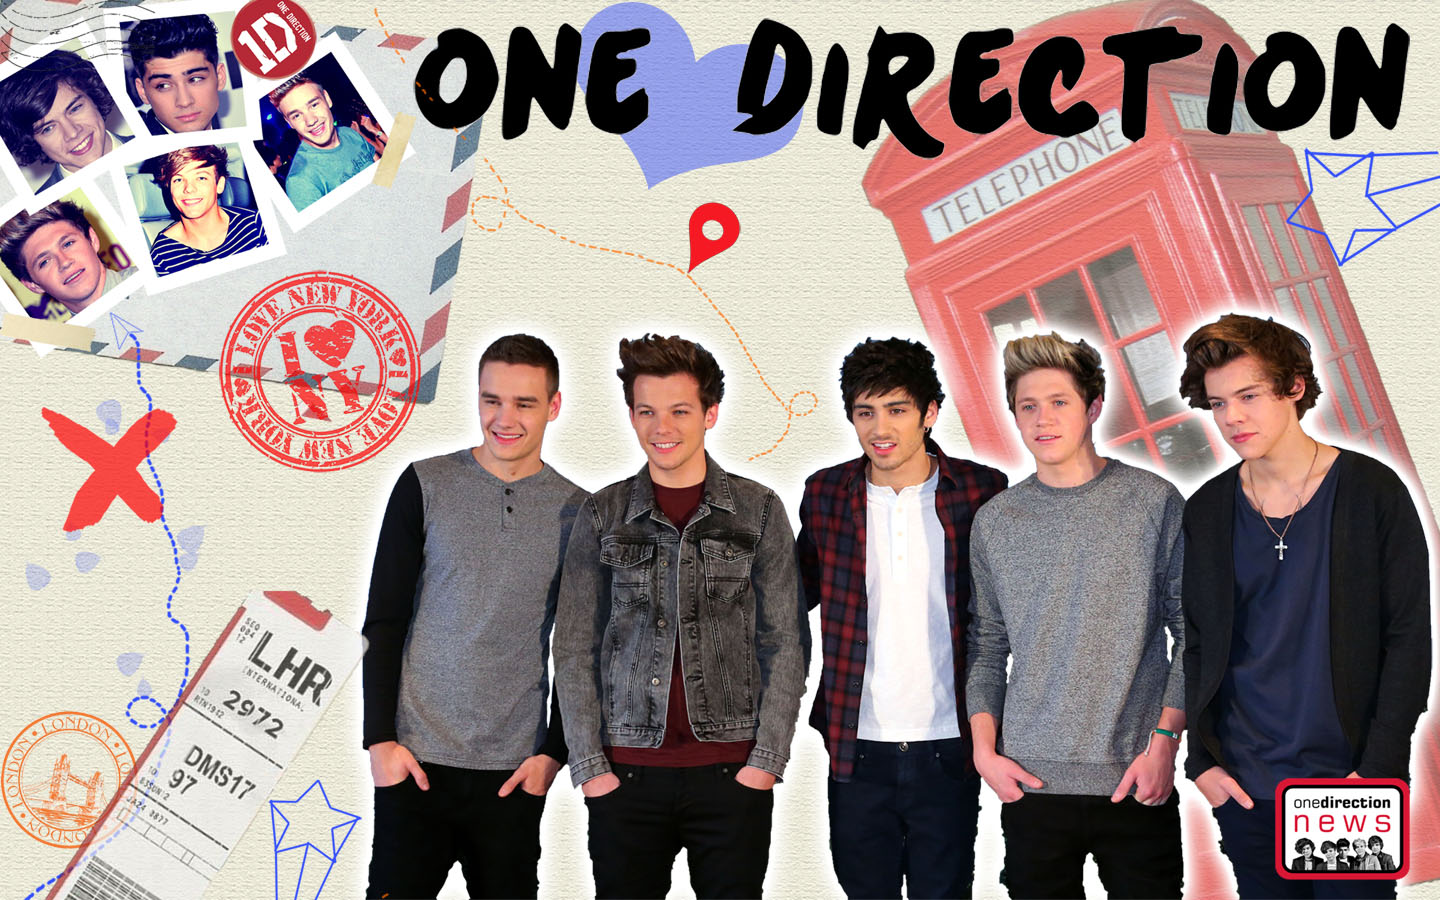 Tumblr collages one direction images amp pictures becuo - Wallpaper One Direction 52 Wallpapers